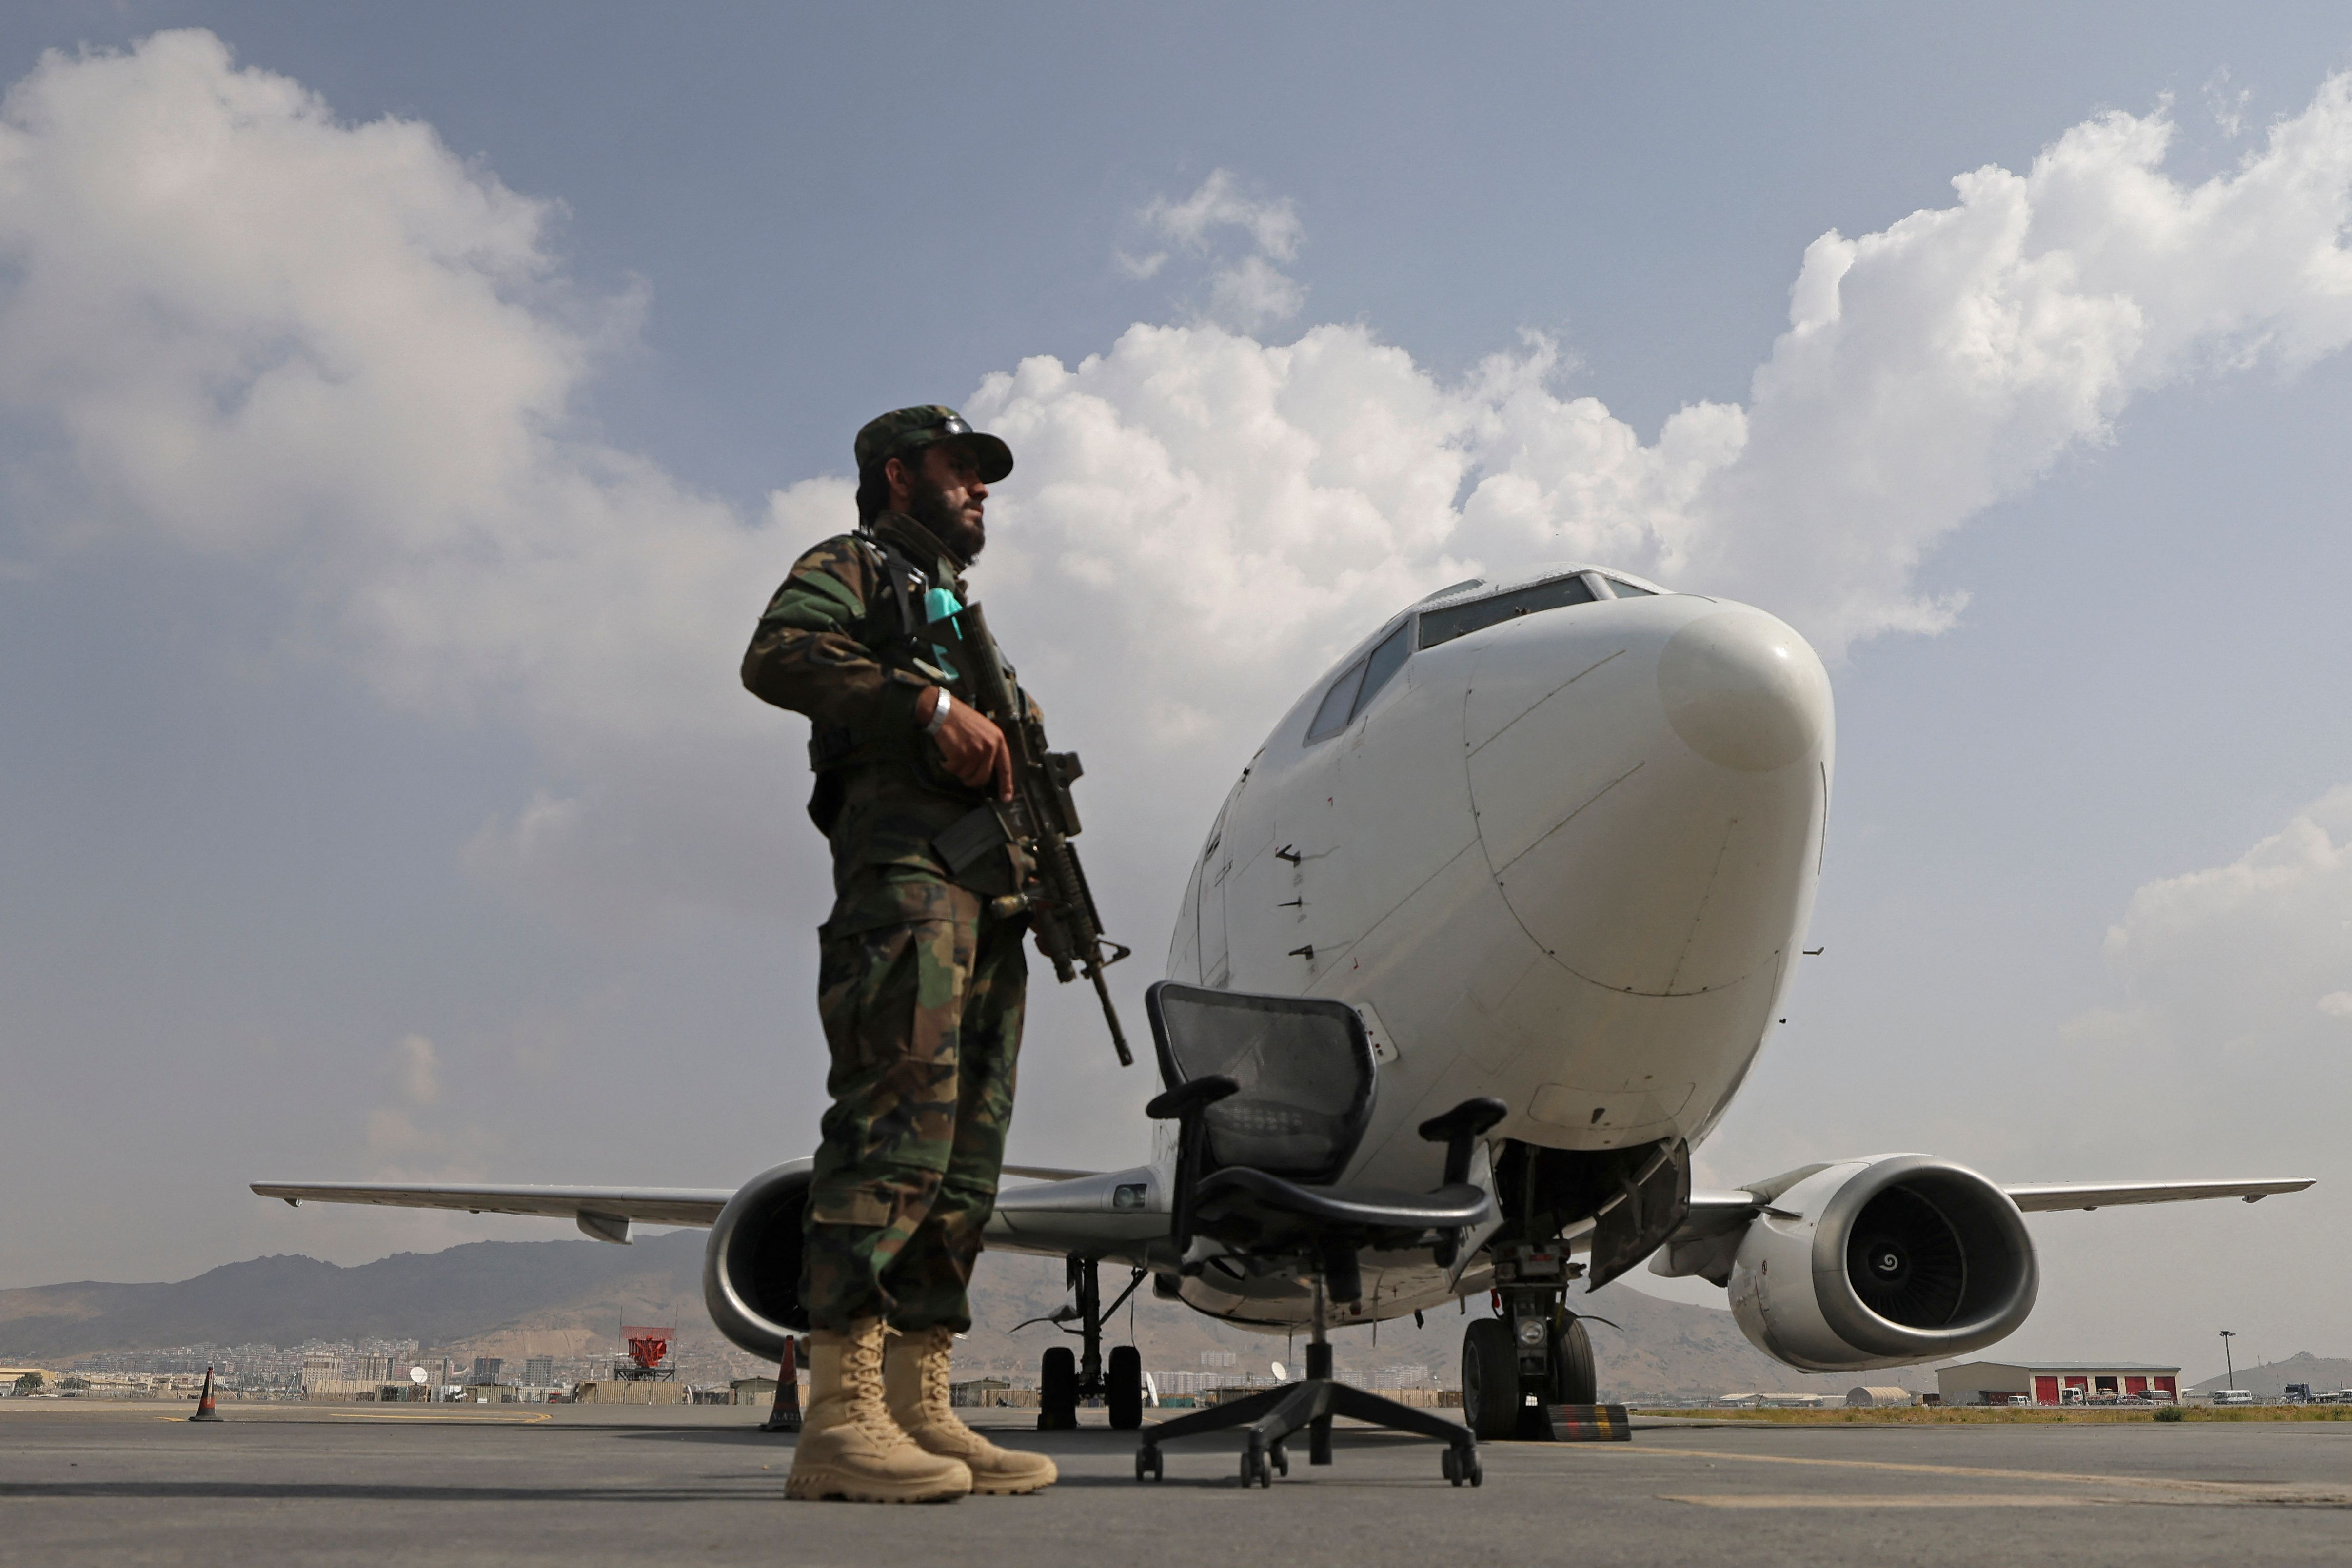 A Taliban fighter stands guard on the tarmac at the airport in Kabul on Sept. 12.